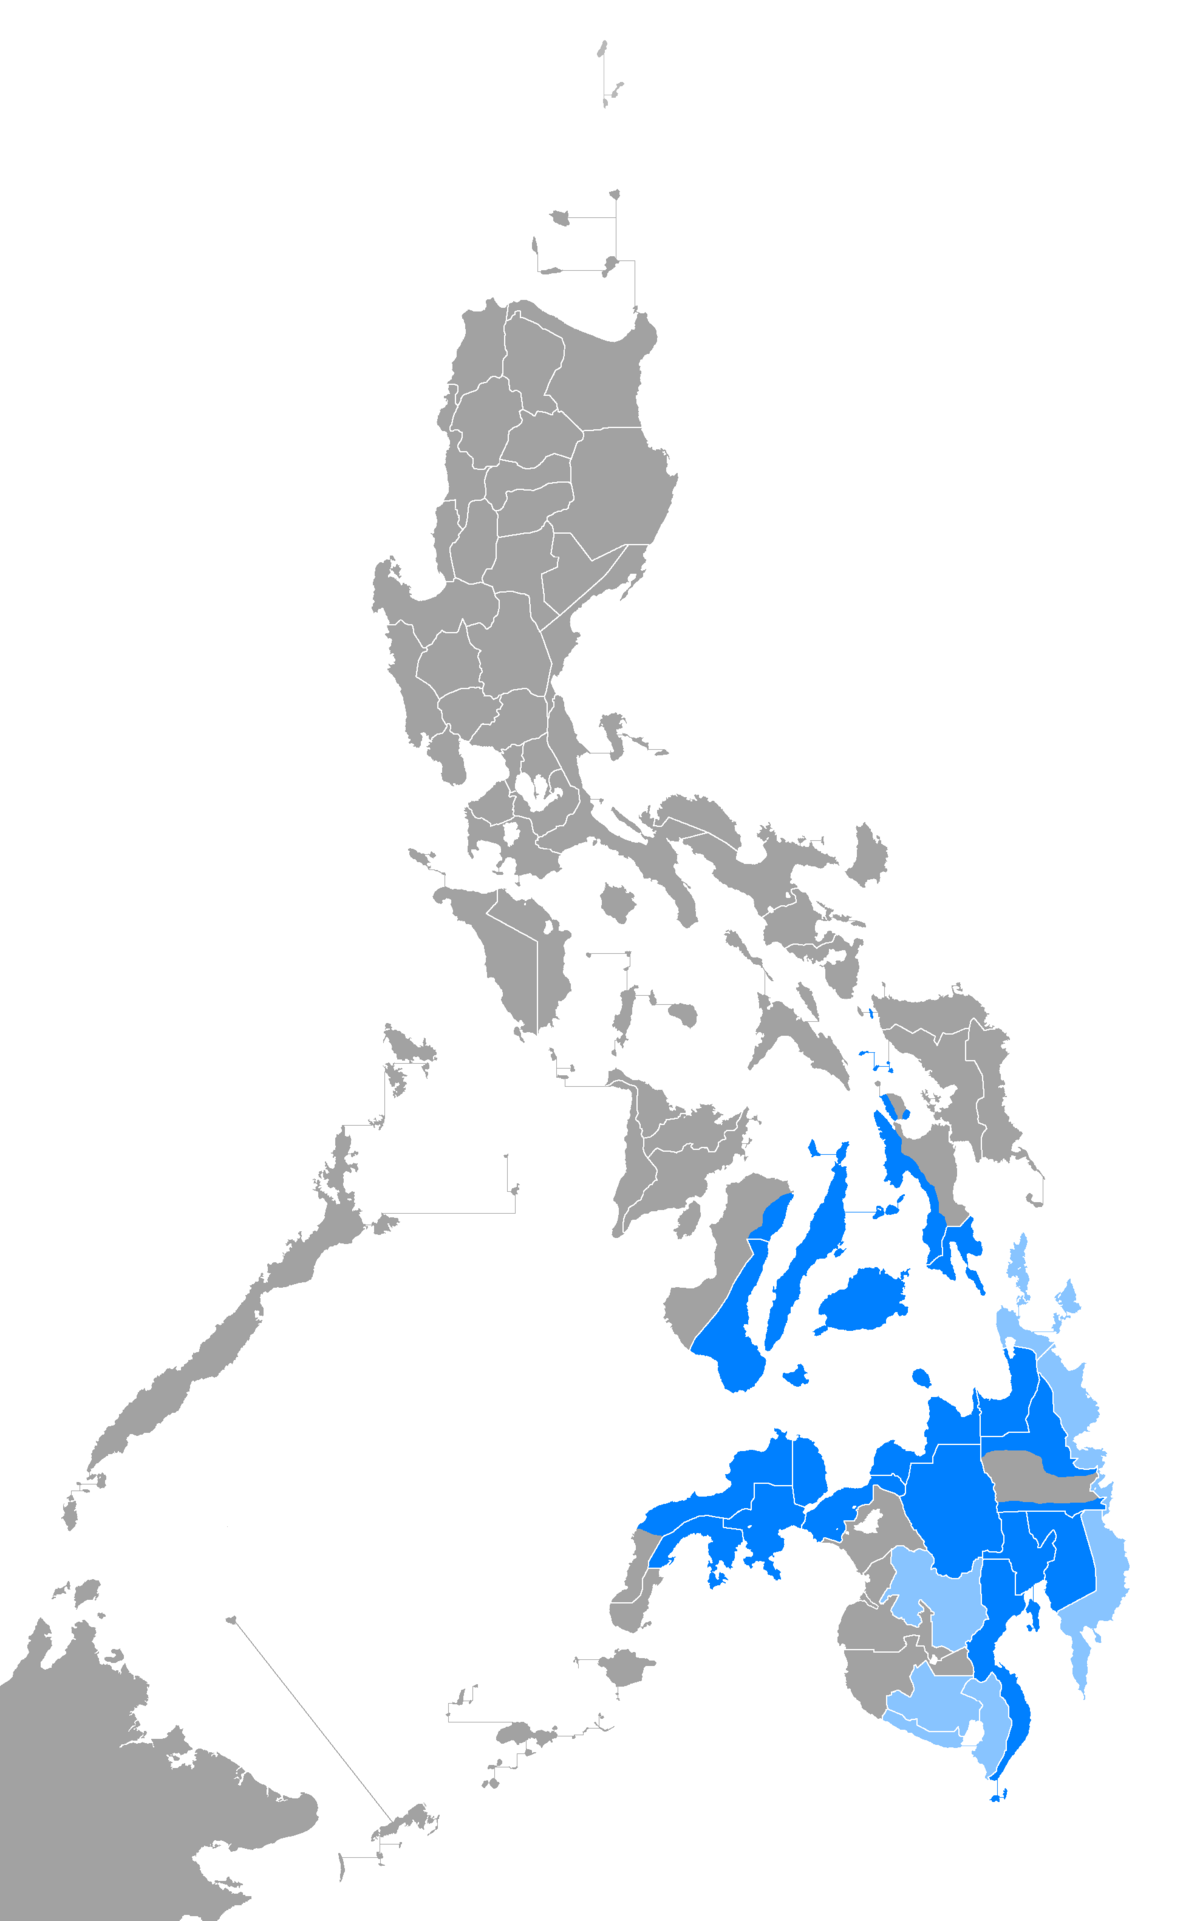 Cebuano language - Wikipedia